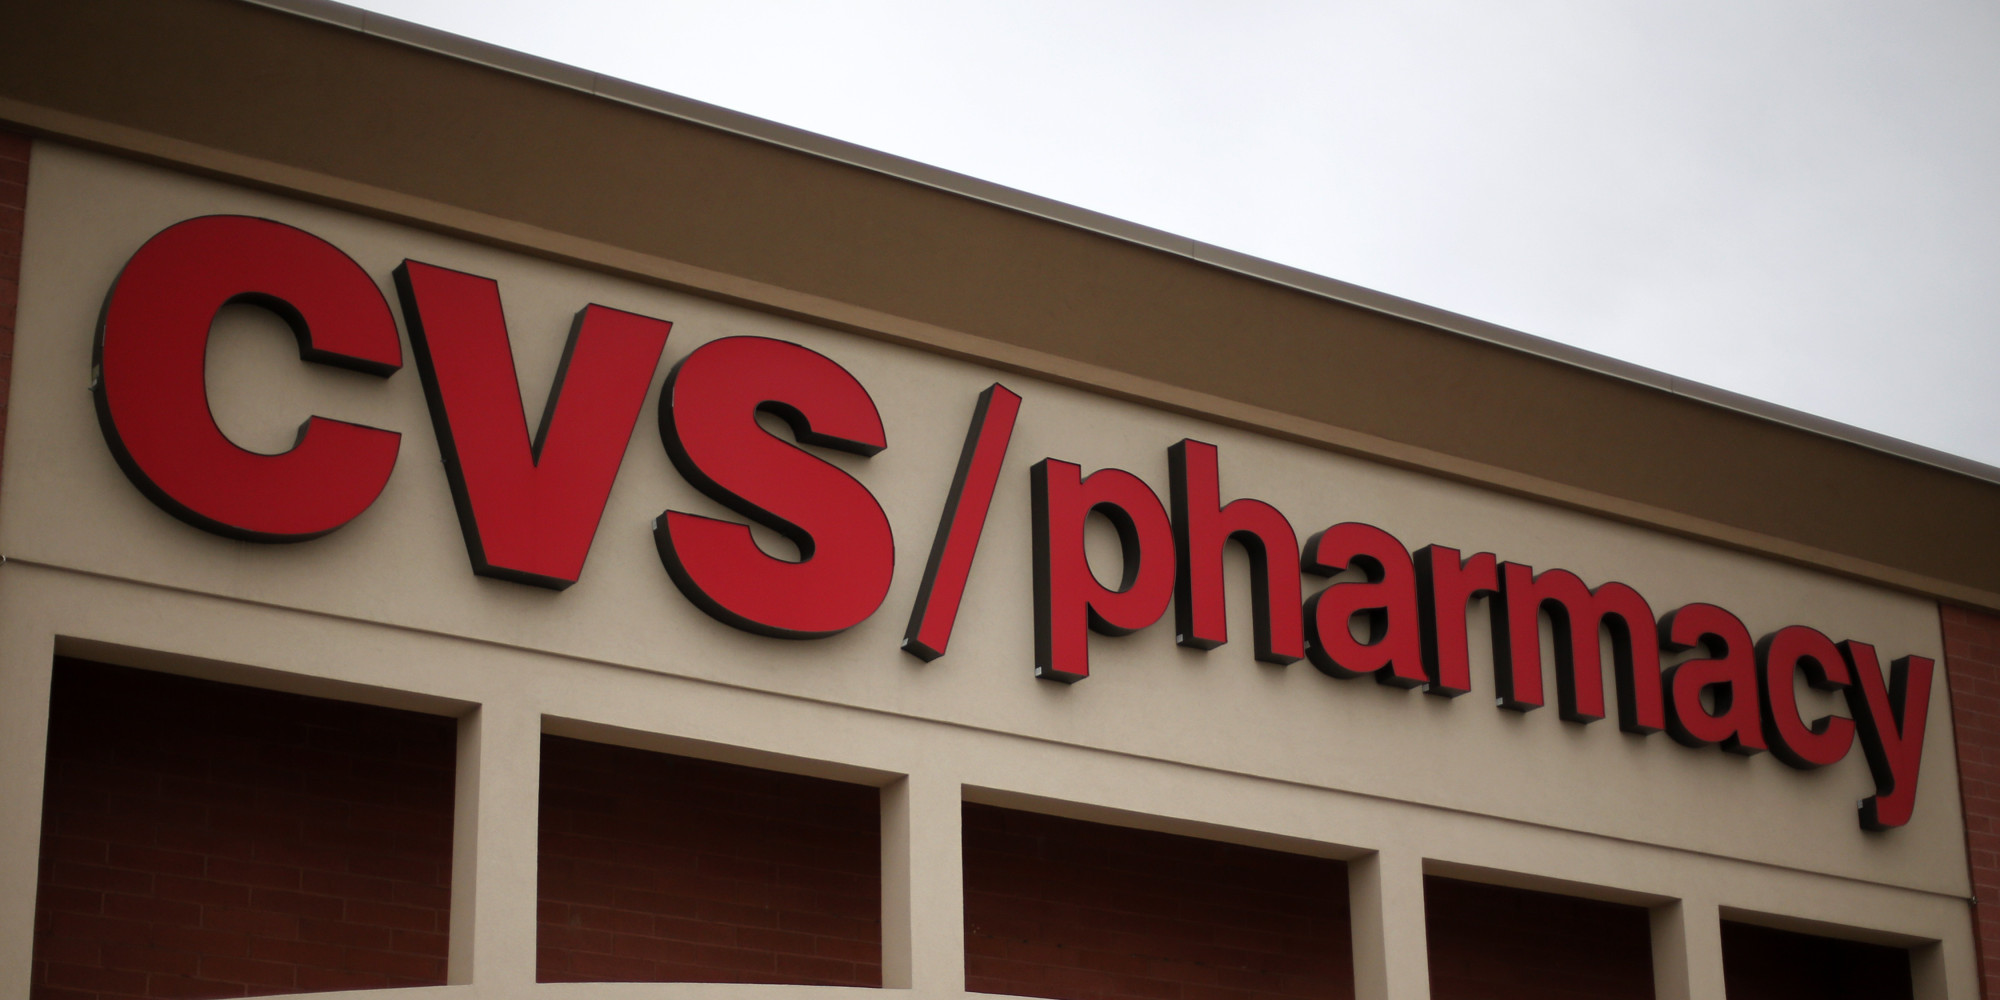 cvs health quits chamber of commerce over tobacco stance